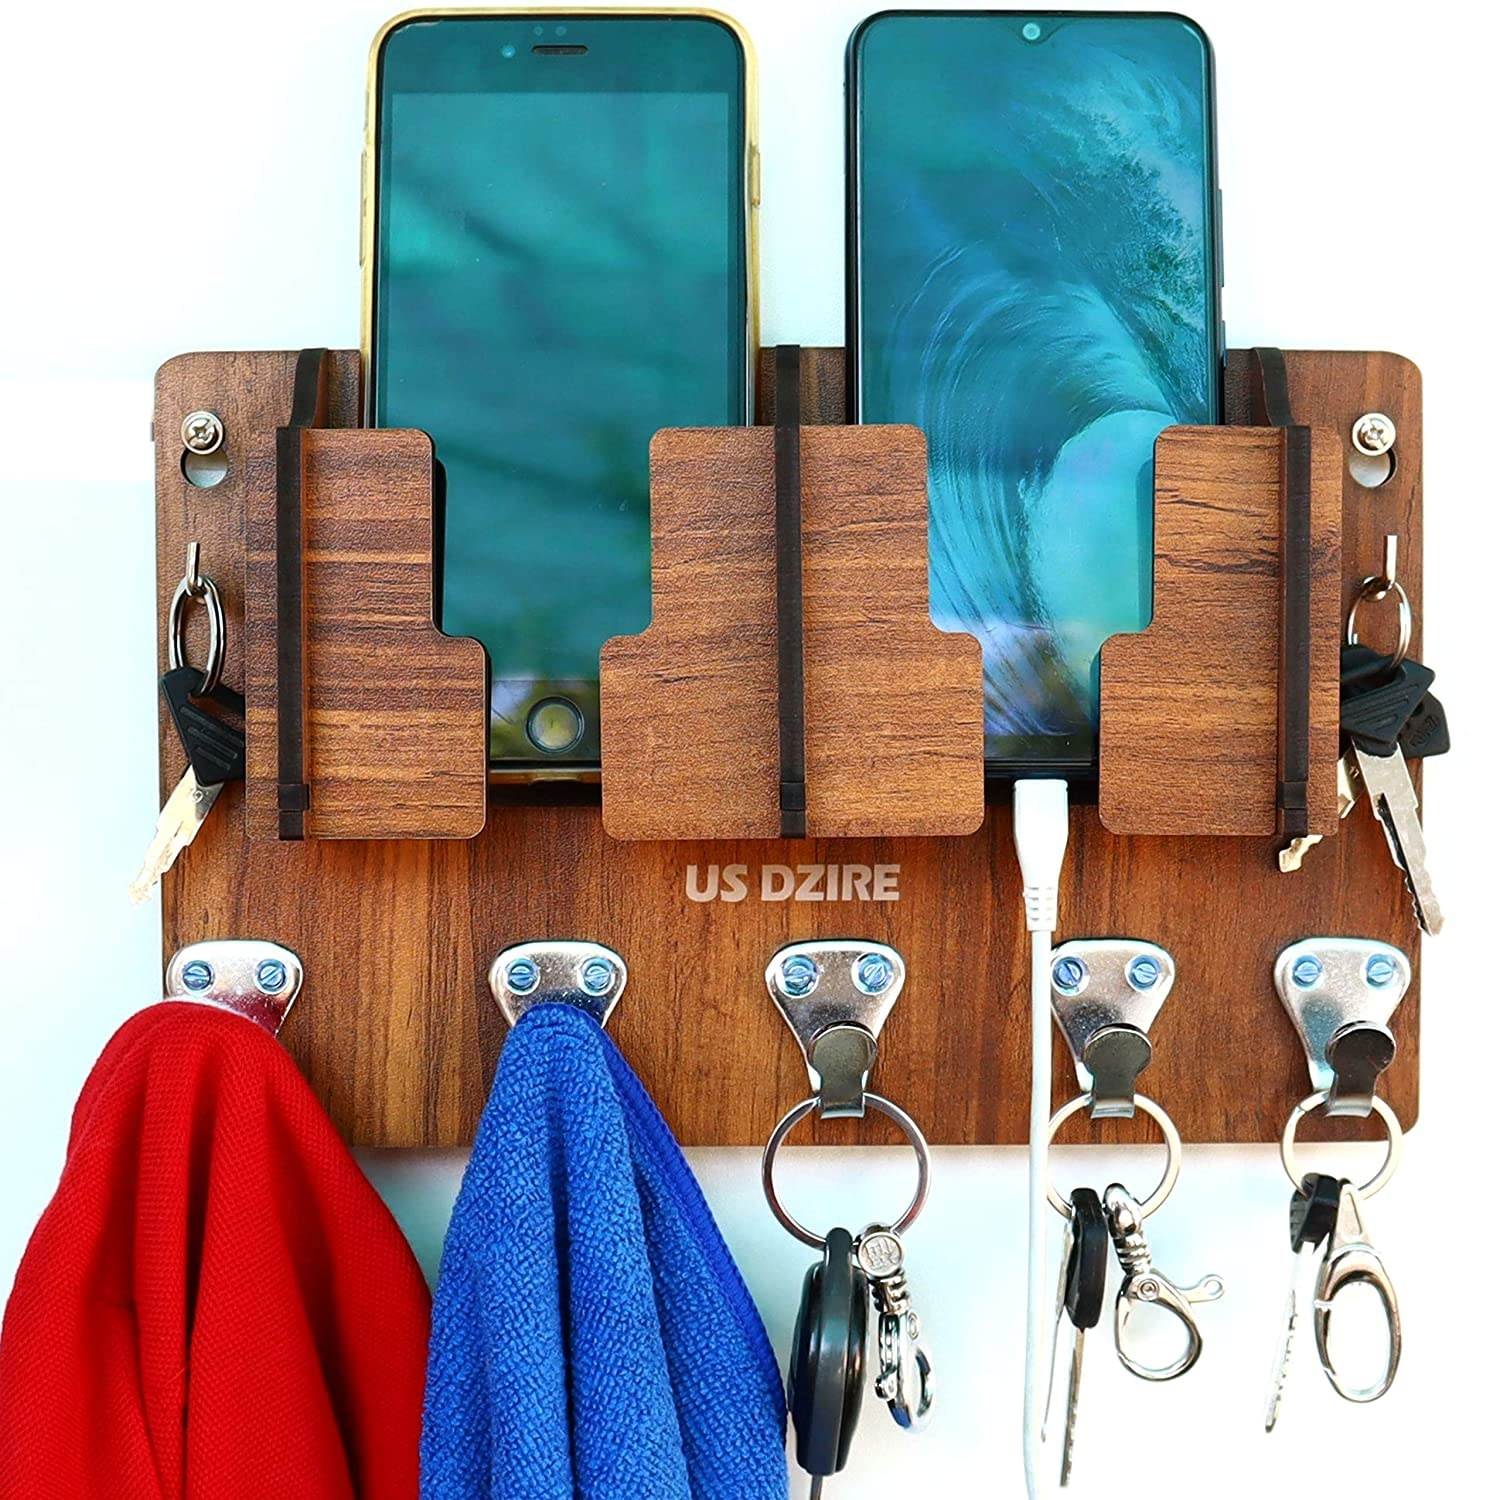 A brown MDF wall organiser with keys, napkins and two phones.